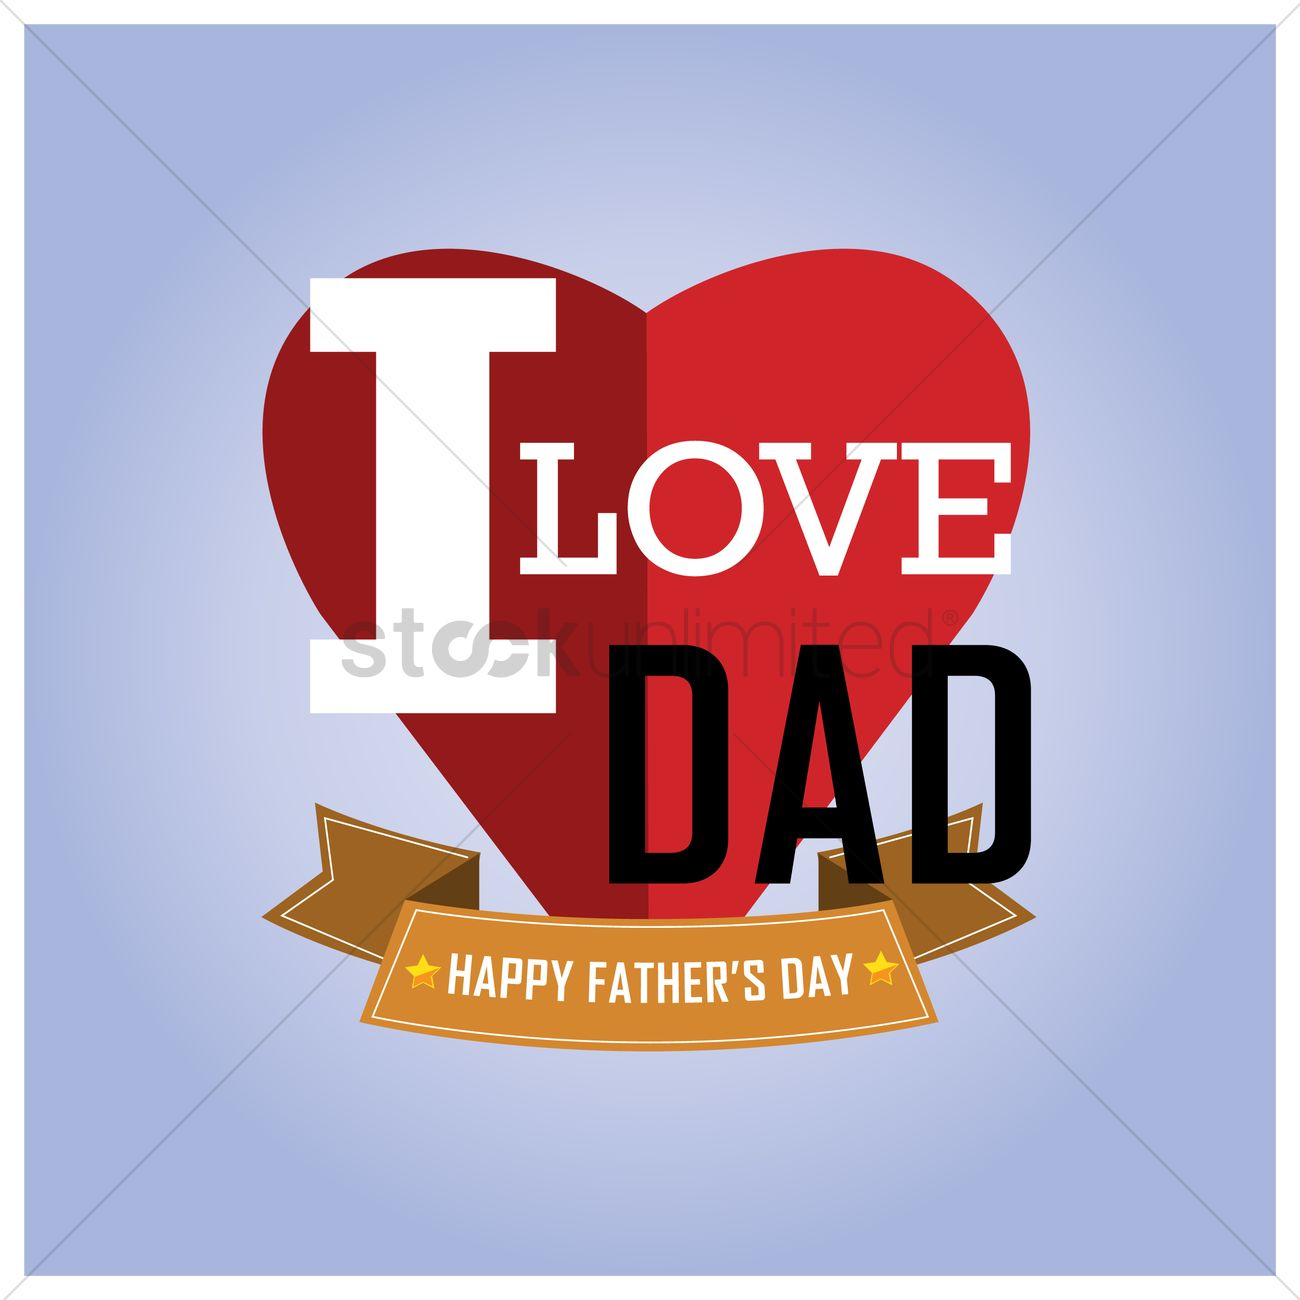 Happy Fathers Day Wallpaper Vector Image 1585479